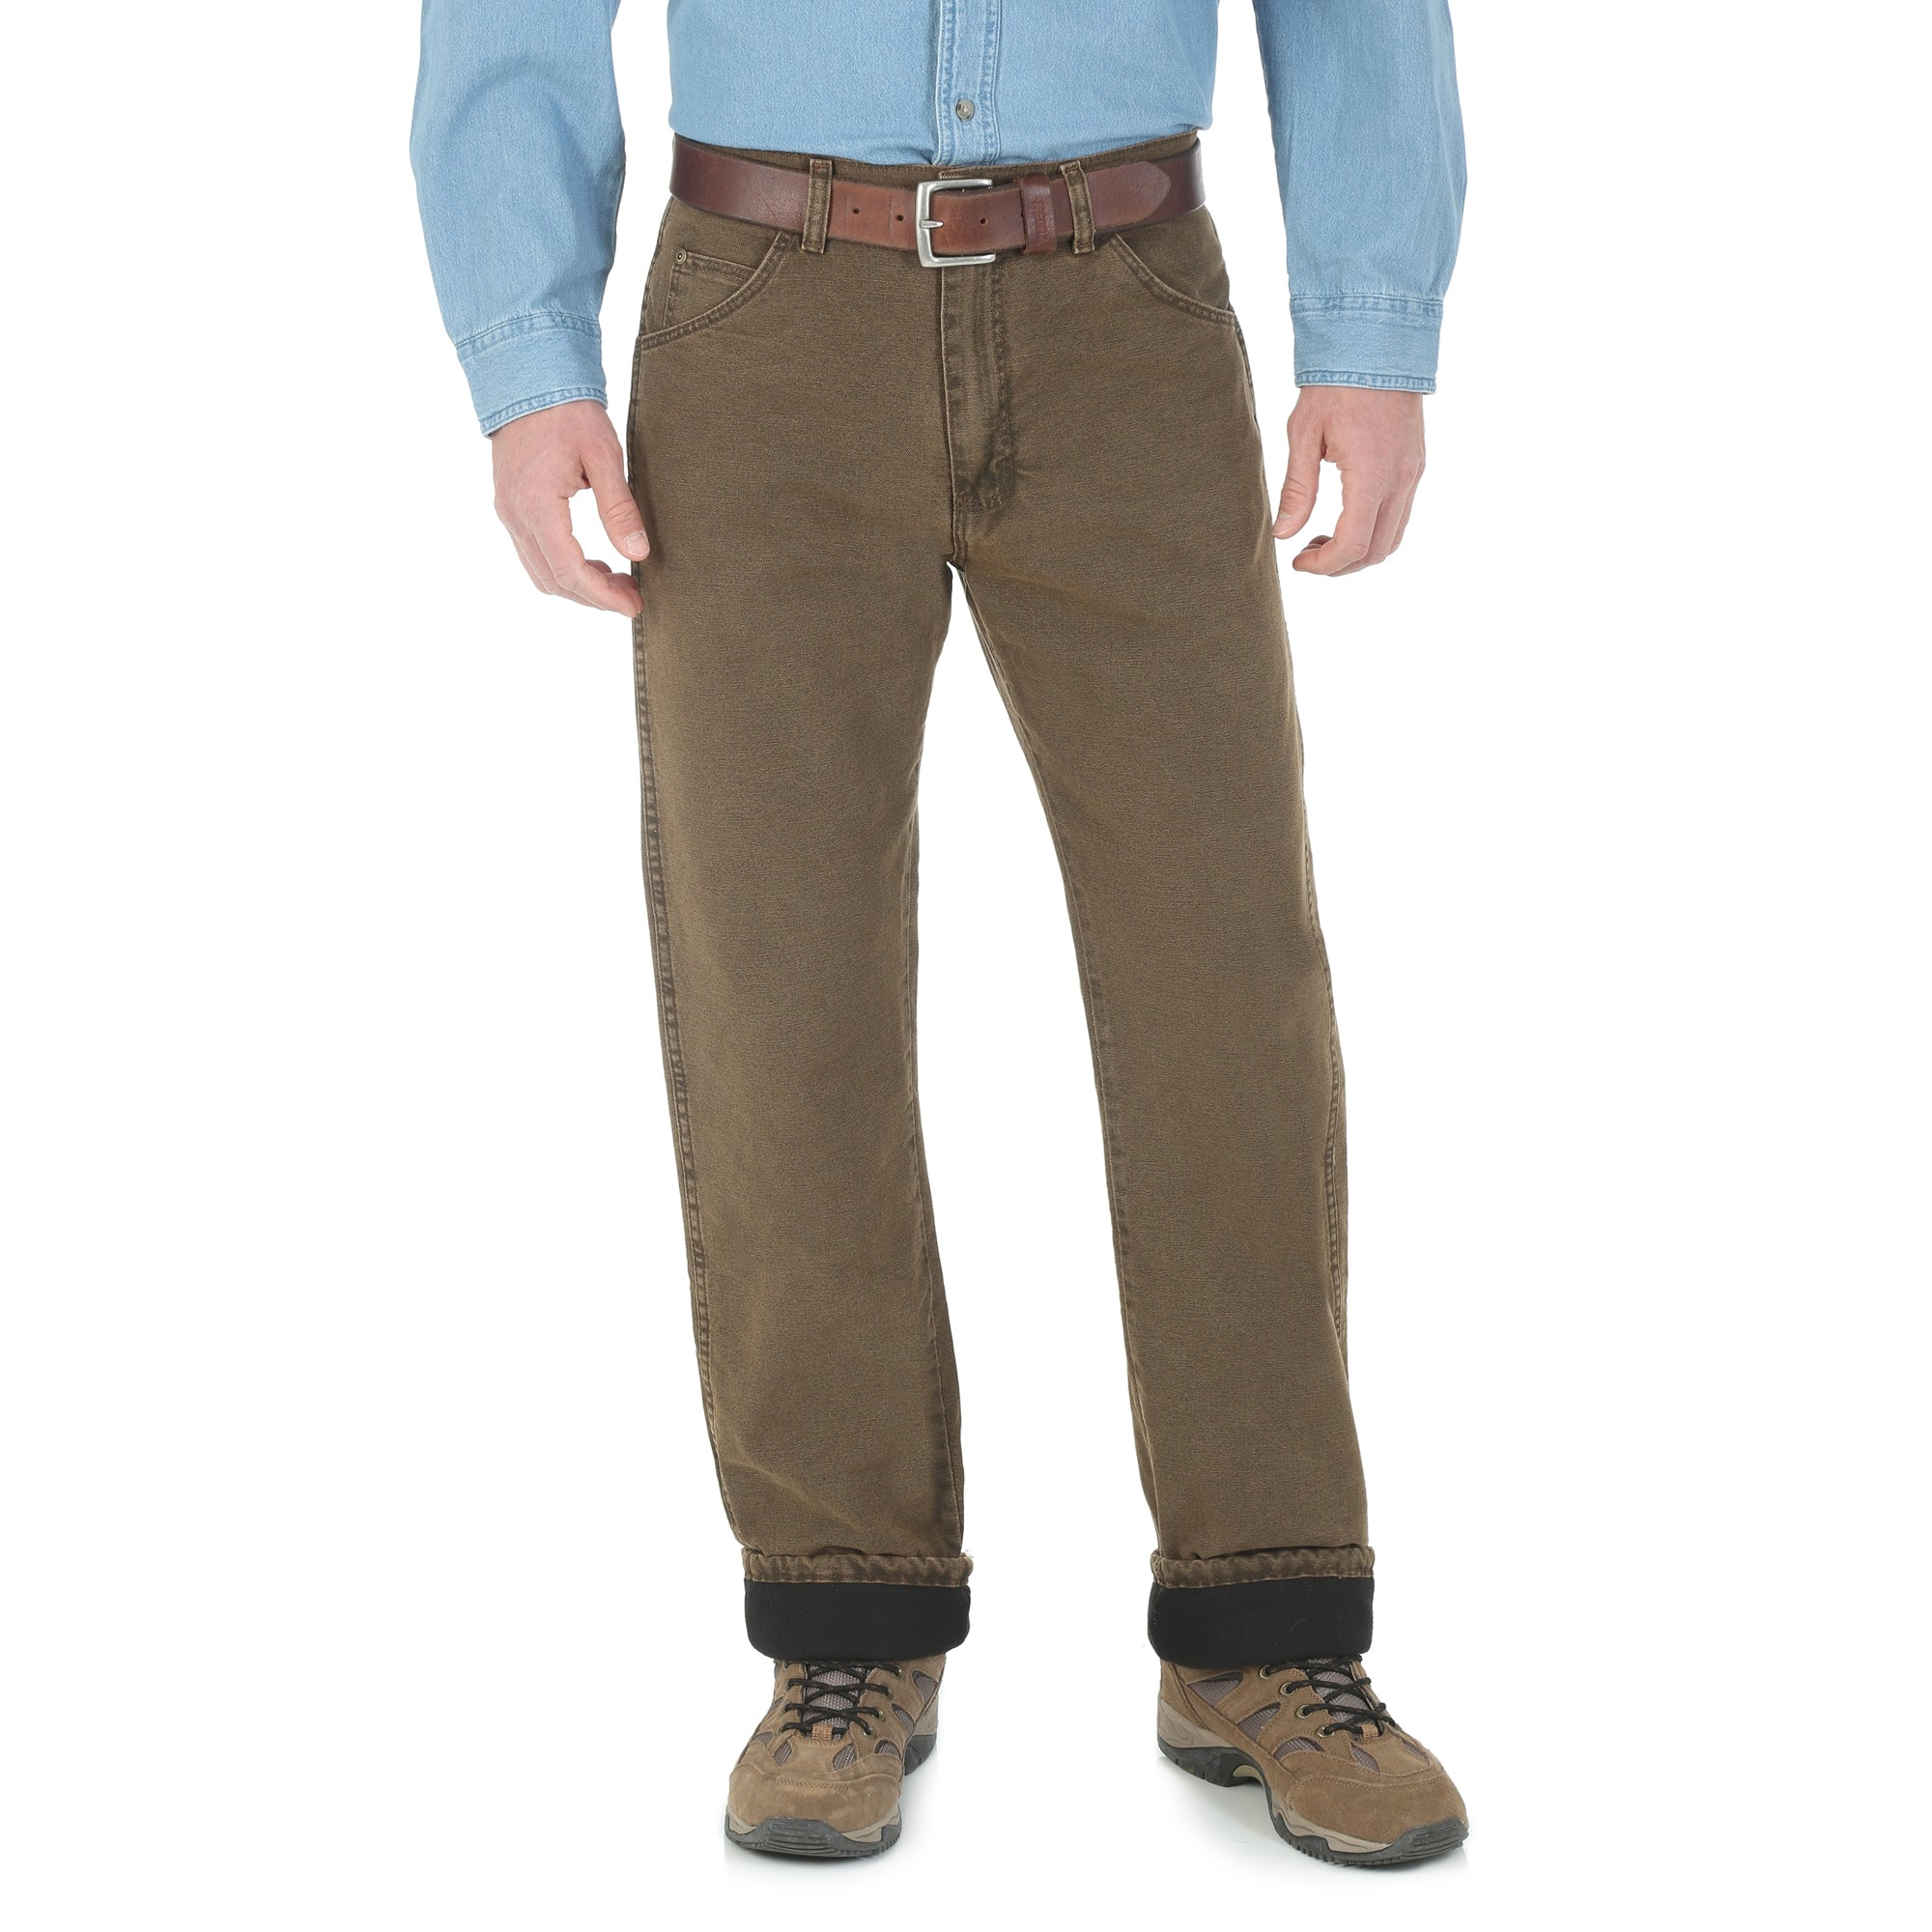 Wrangler Men S Rugged Wear Thermal Jeans Good S Store Online